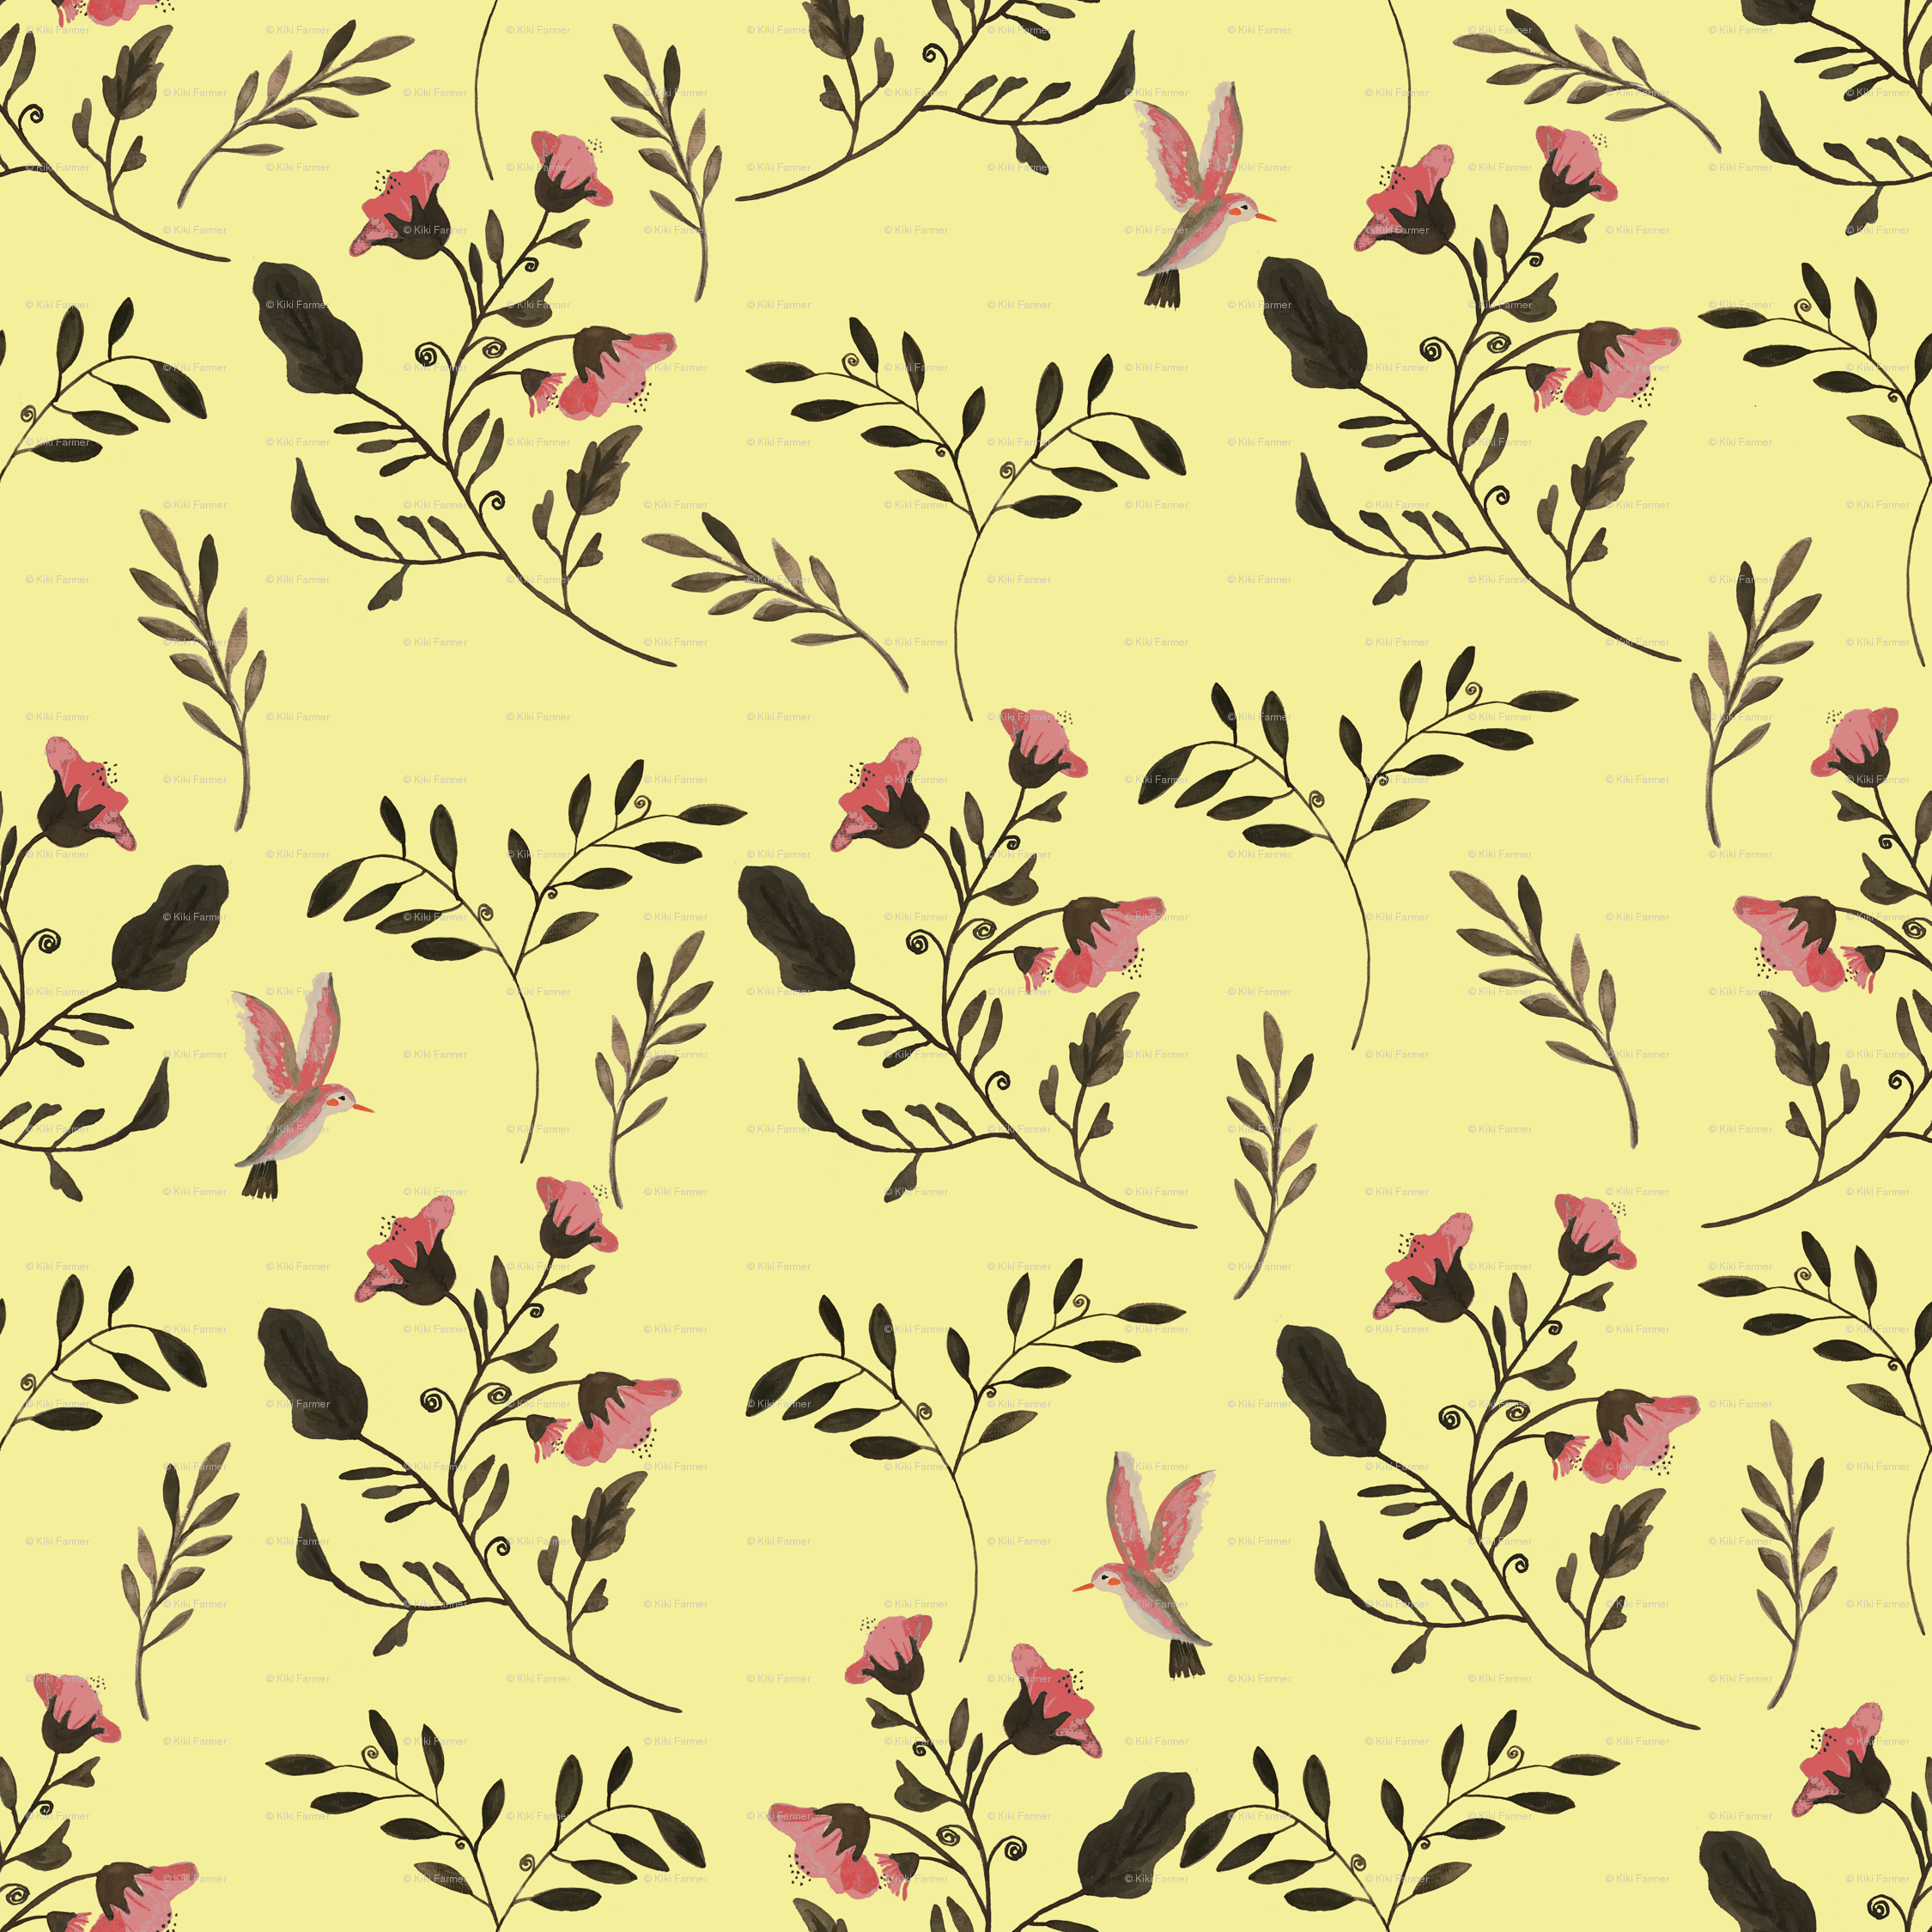 Rose Flowers And Hummingbirds On Butter Yellow Giftwrap